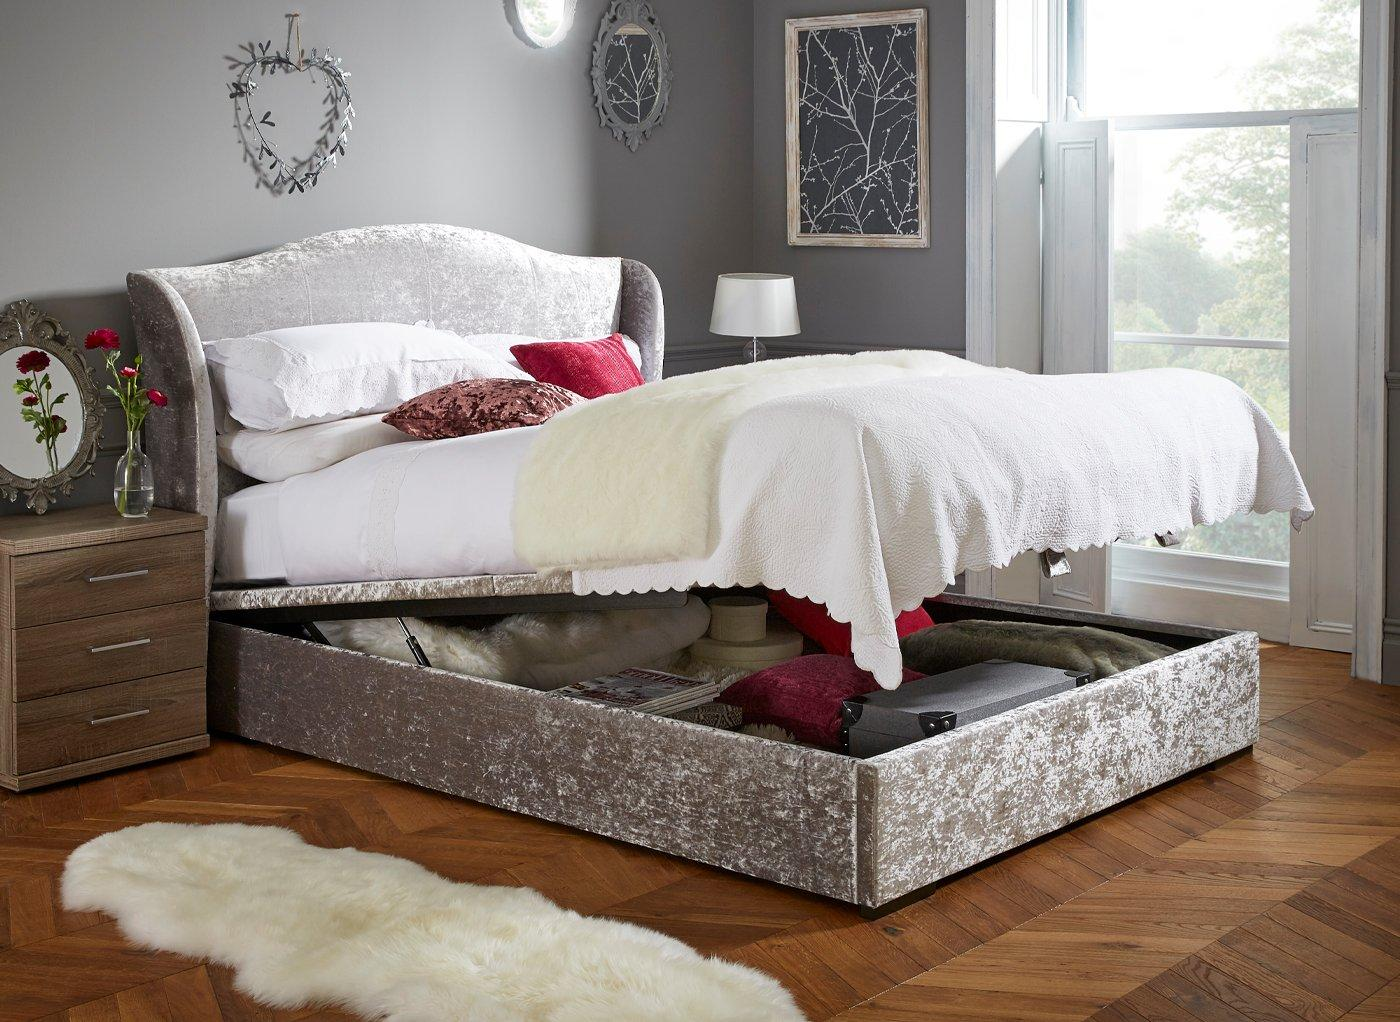 sofa bed next day delivery london recover uk dreams beds from the s leading mattress store showan frame